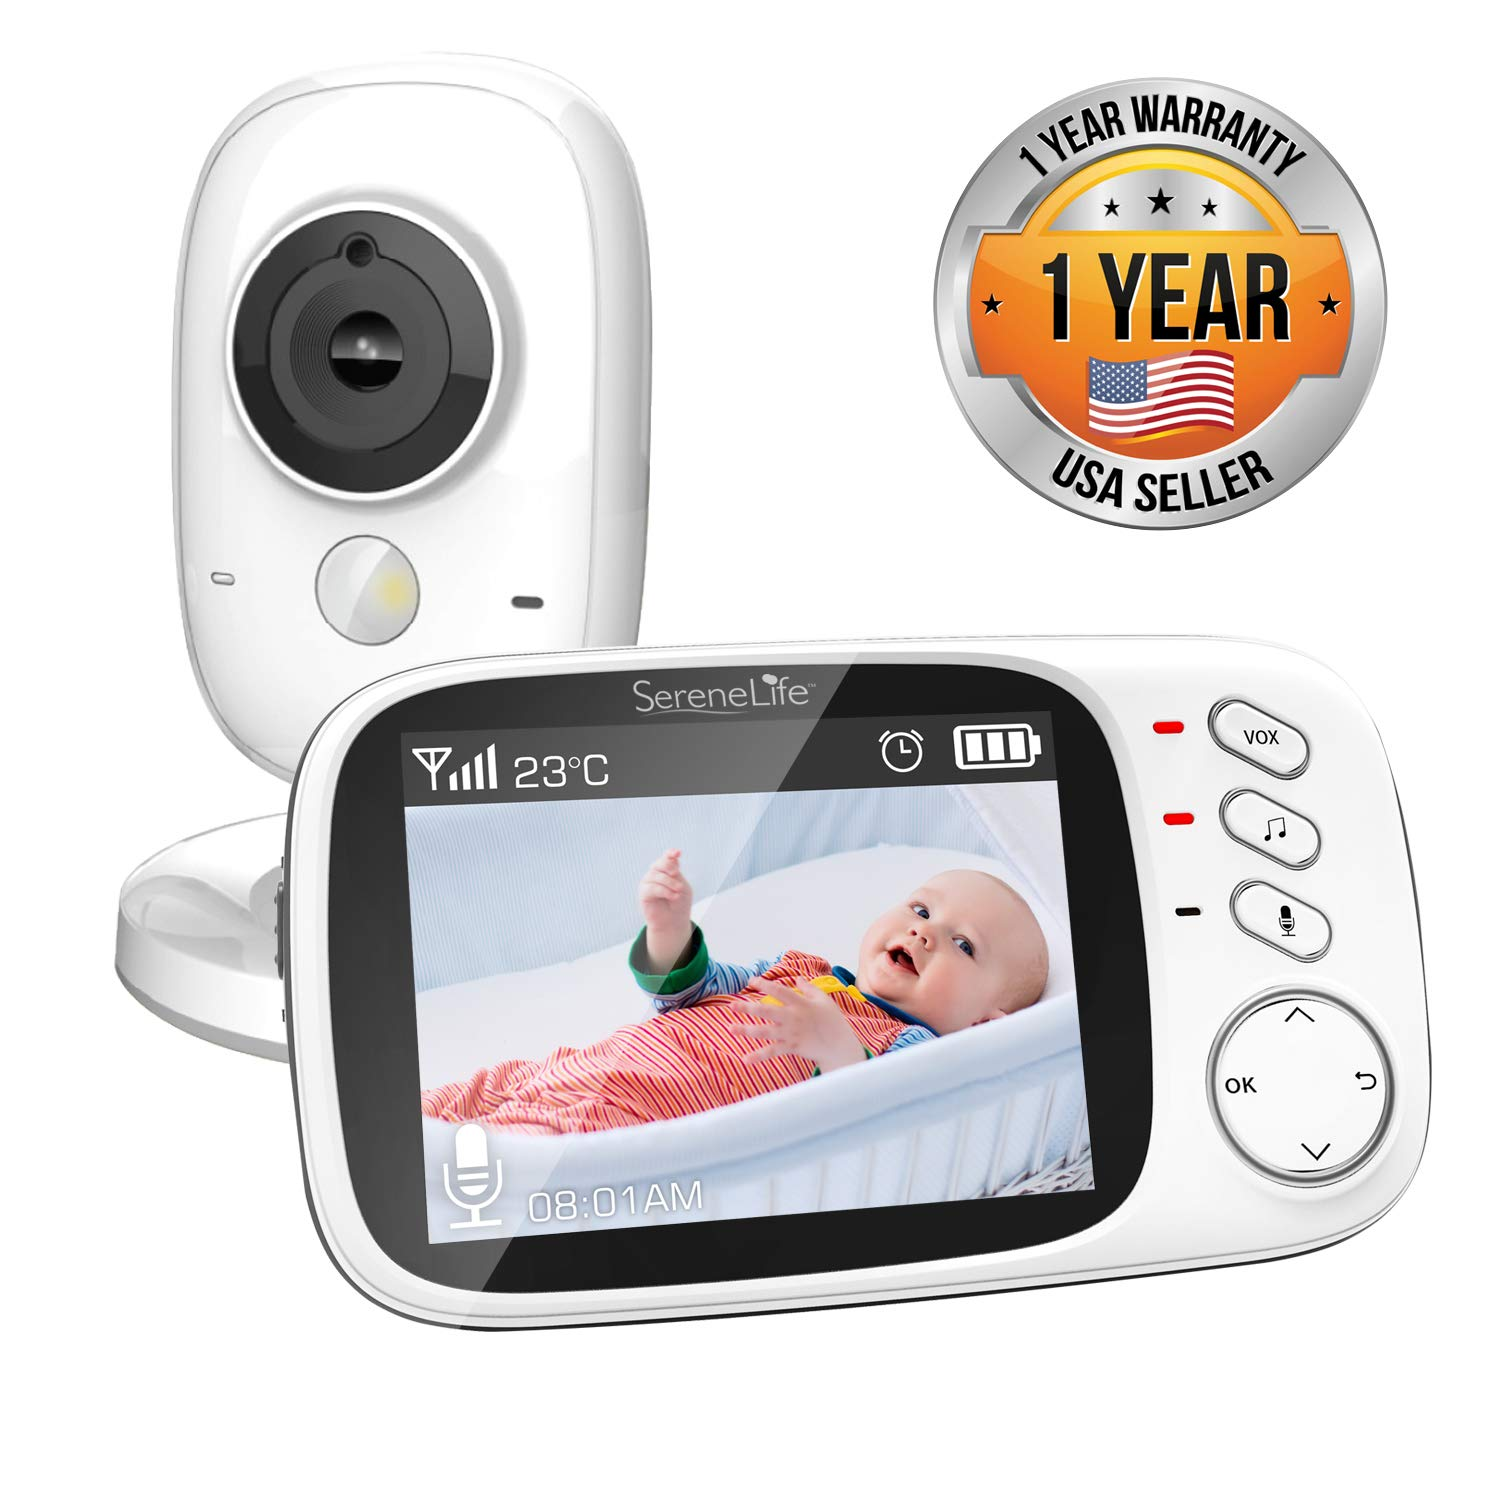 Video Baby Monitor Long Range - Upgraded 850' Wireless Range,  Night Vision, Temperature Monitoring and Portable 2'' Color Screen - Serenelife USA SLBCAM20